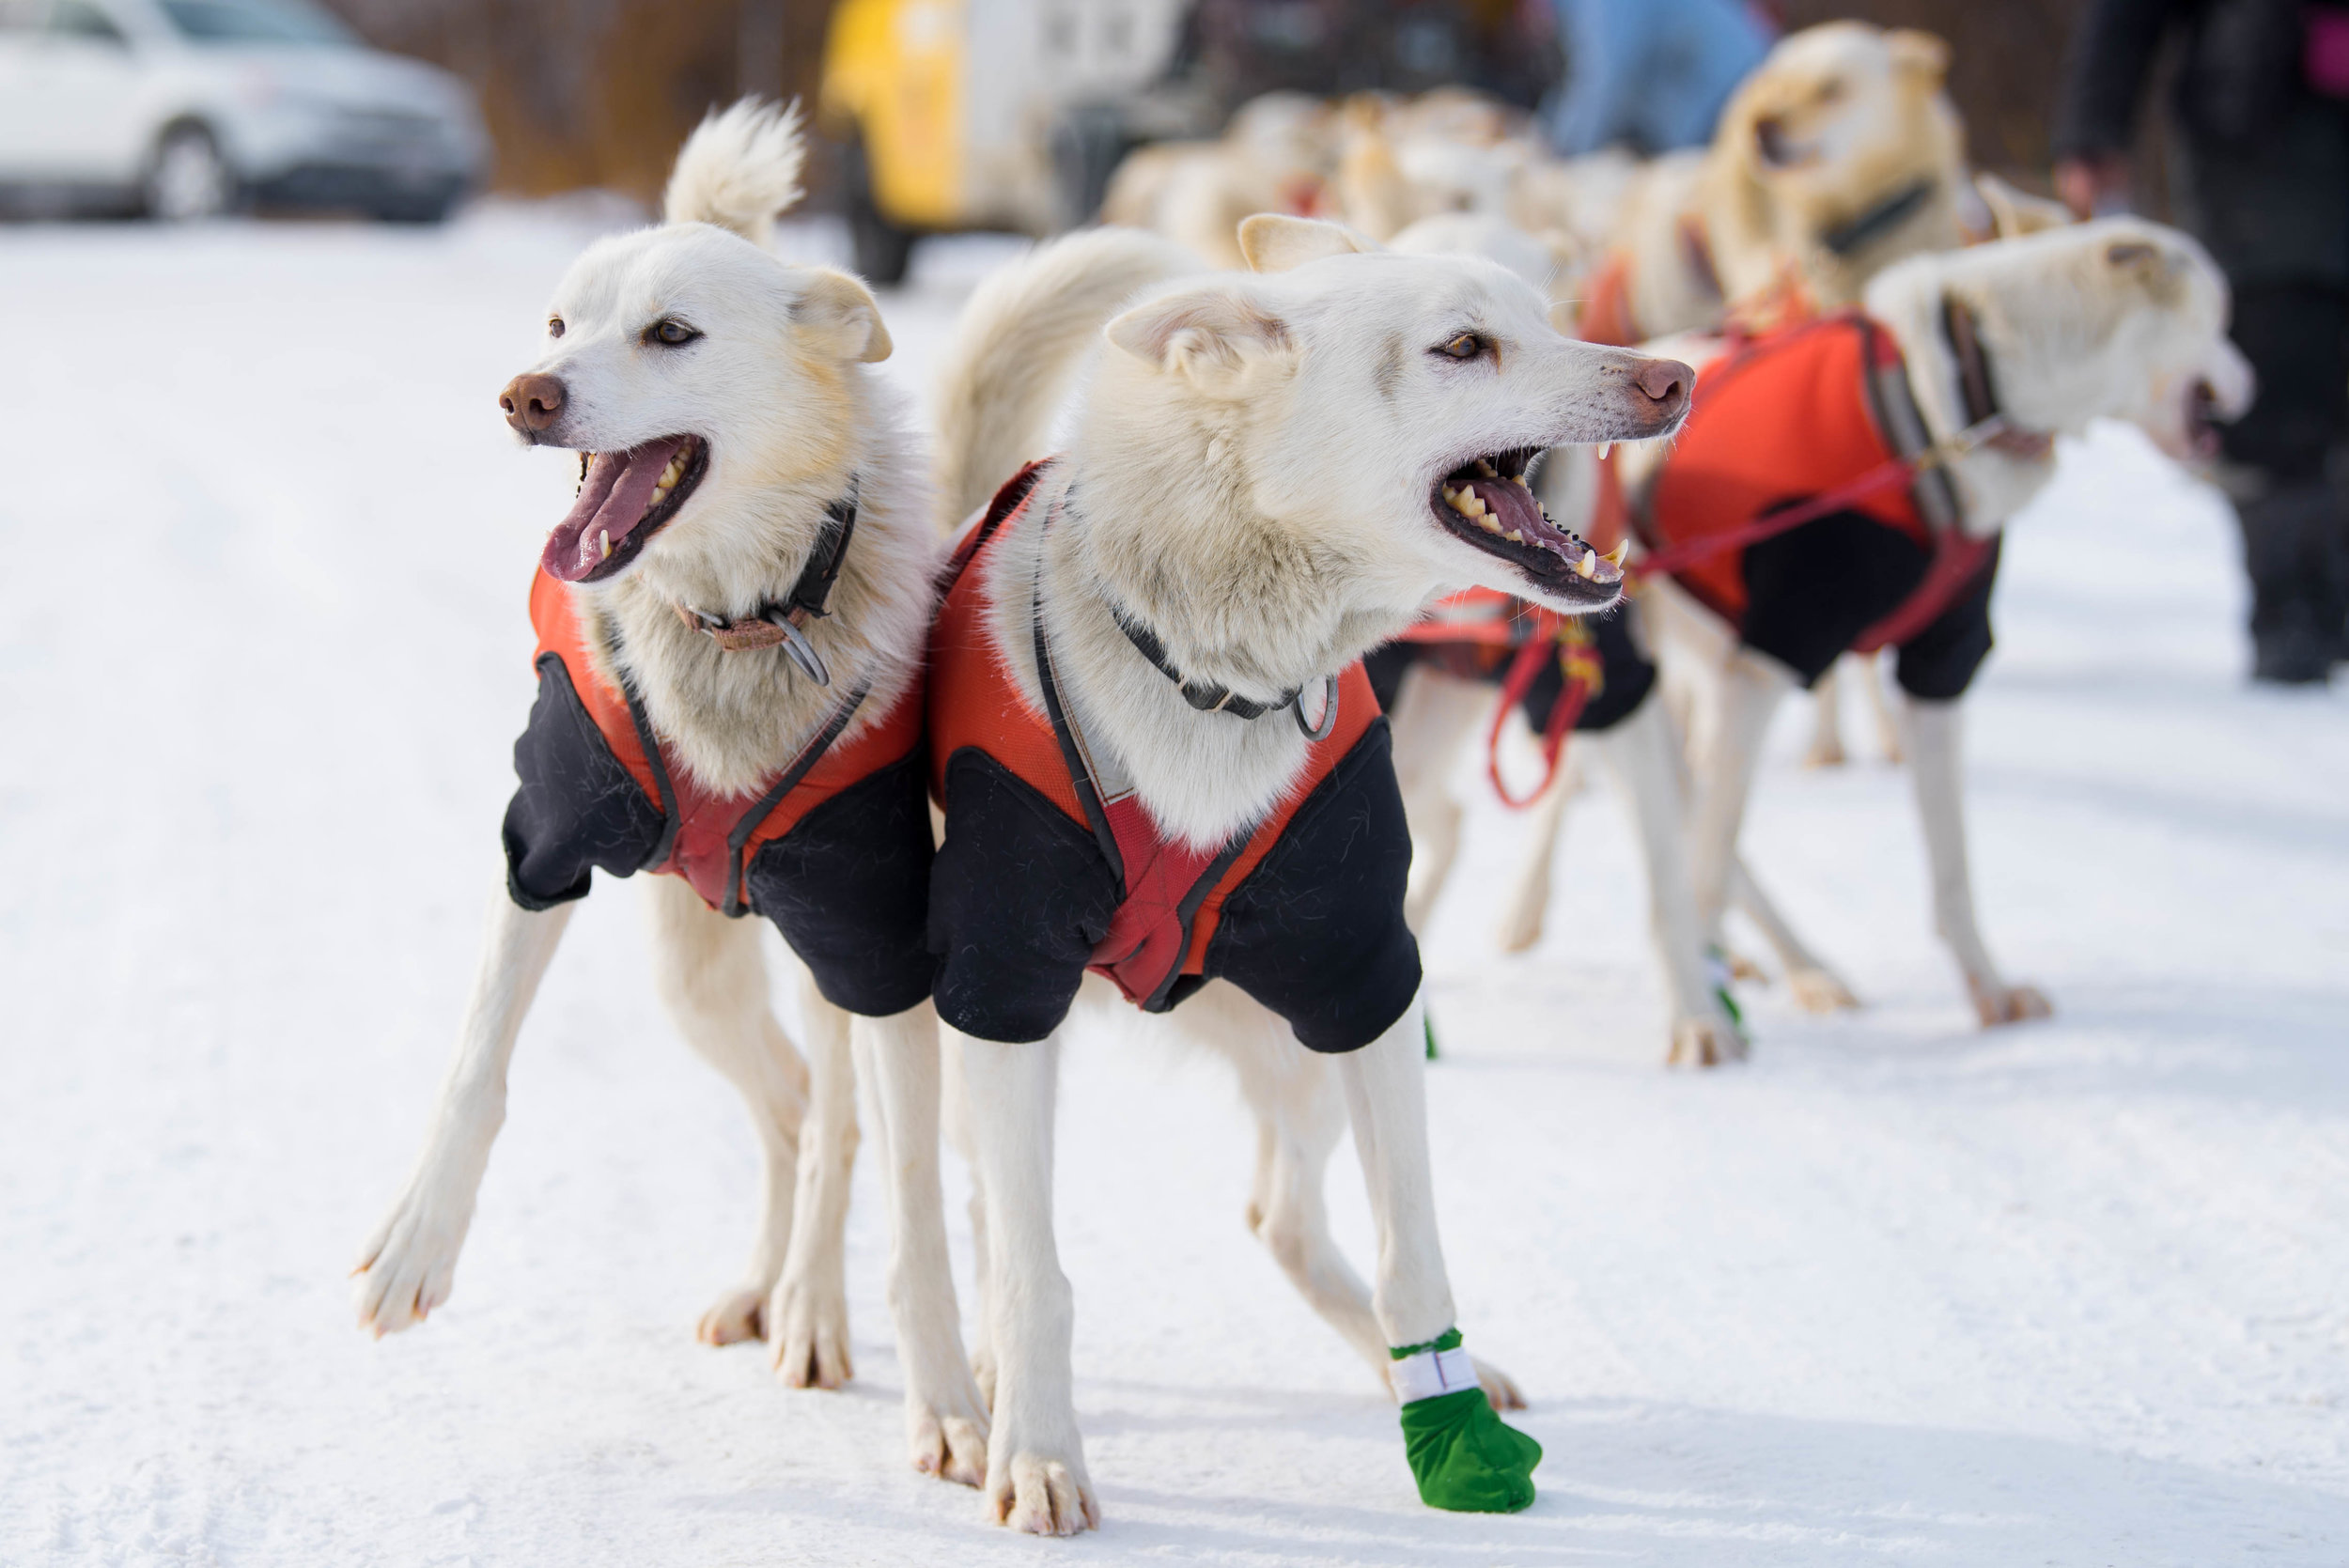 The Hilltown Sleddogs leap for joy as they anticipate their run, while the rest of the dogs are inspected and strapped on.  Before each run, the dogs have their paws inspected.  If necessary, a soft boot is applied to protect them from further scrapes or blisters.  These Alaskan Huskies are preparing for the 250 mile Can-Am Crown International in Maine.